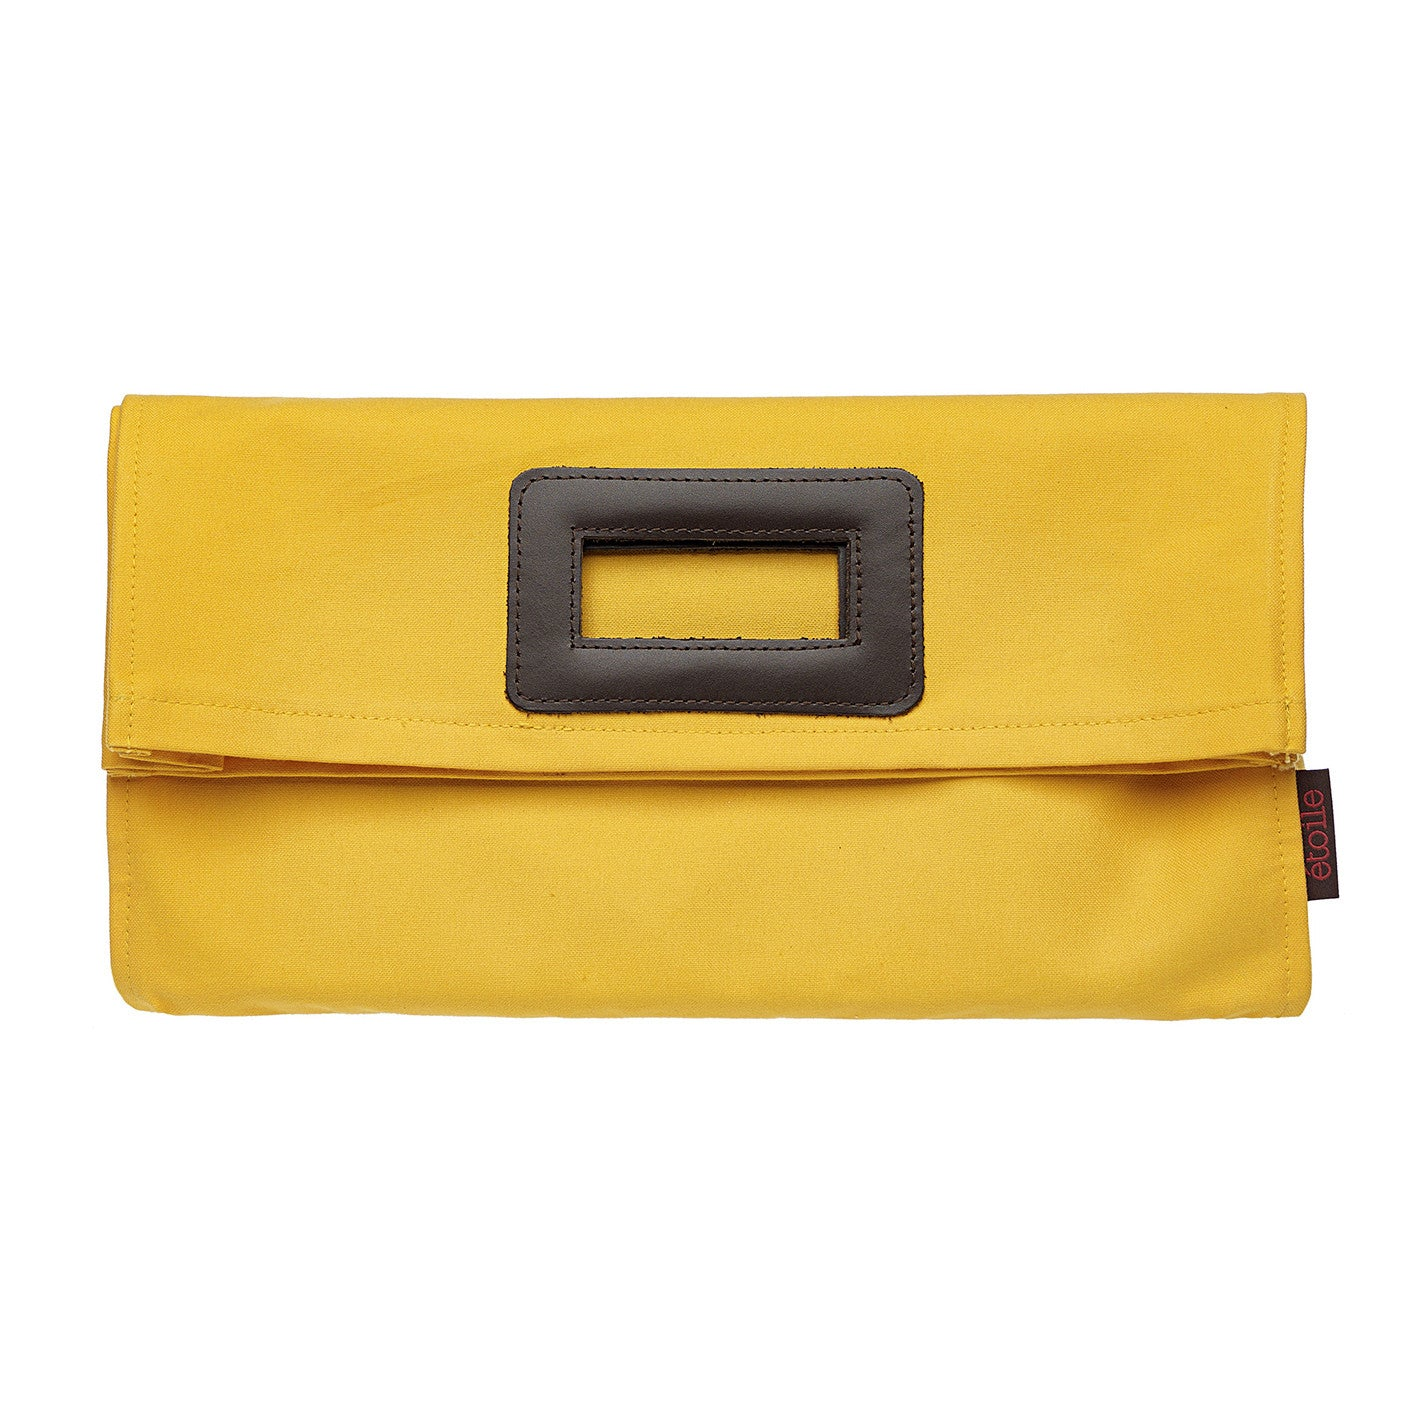 Stephanie Coated Cotton Canvas Clutch Bag in Bright Maize Yellow